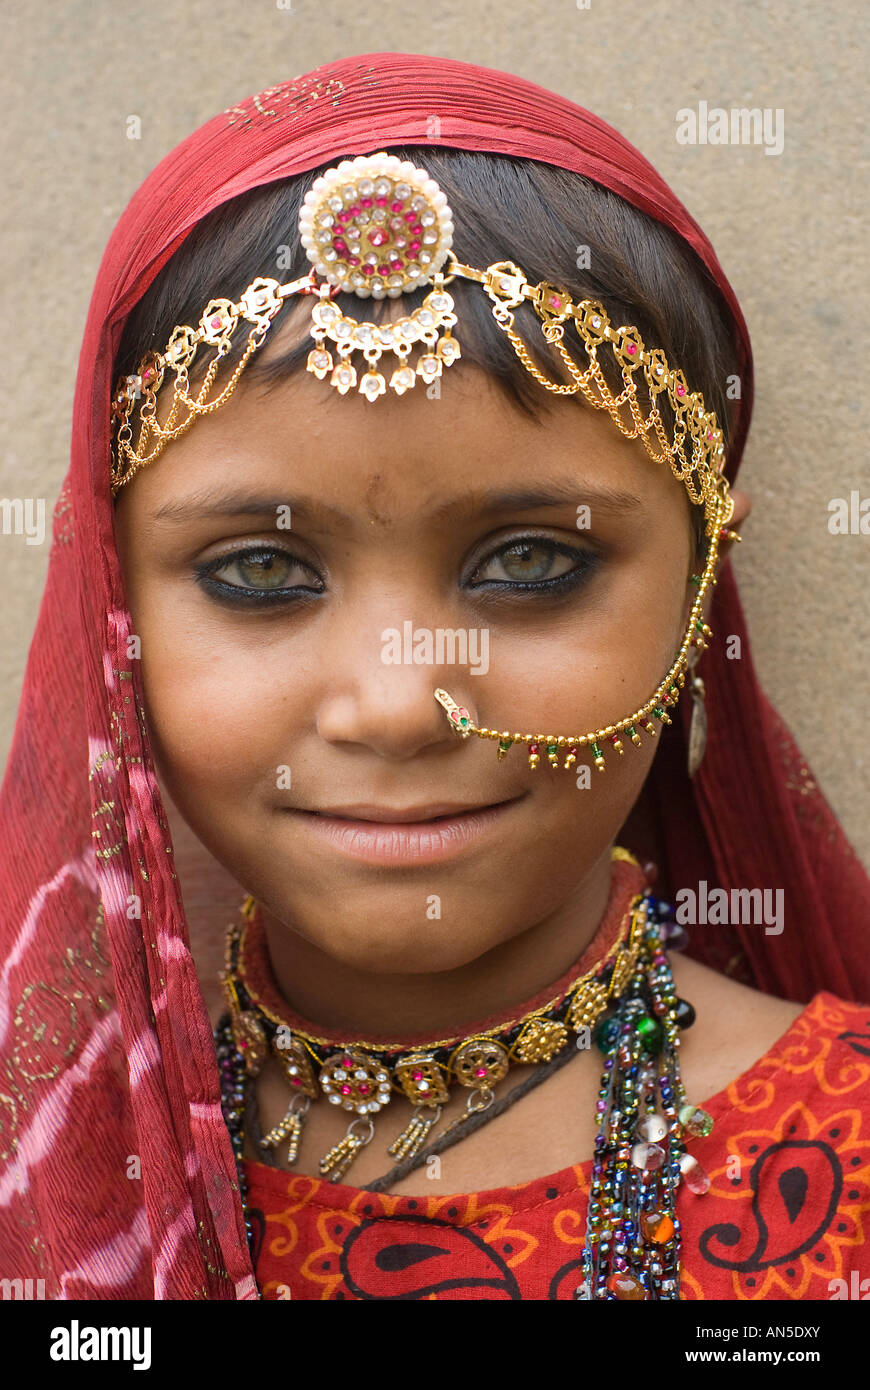 portrait of a smiling gypsy girl from rajasthan india stock photo